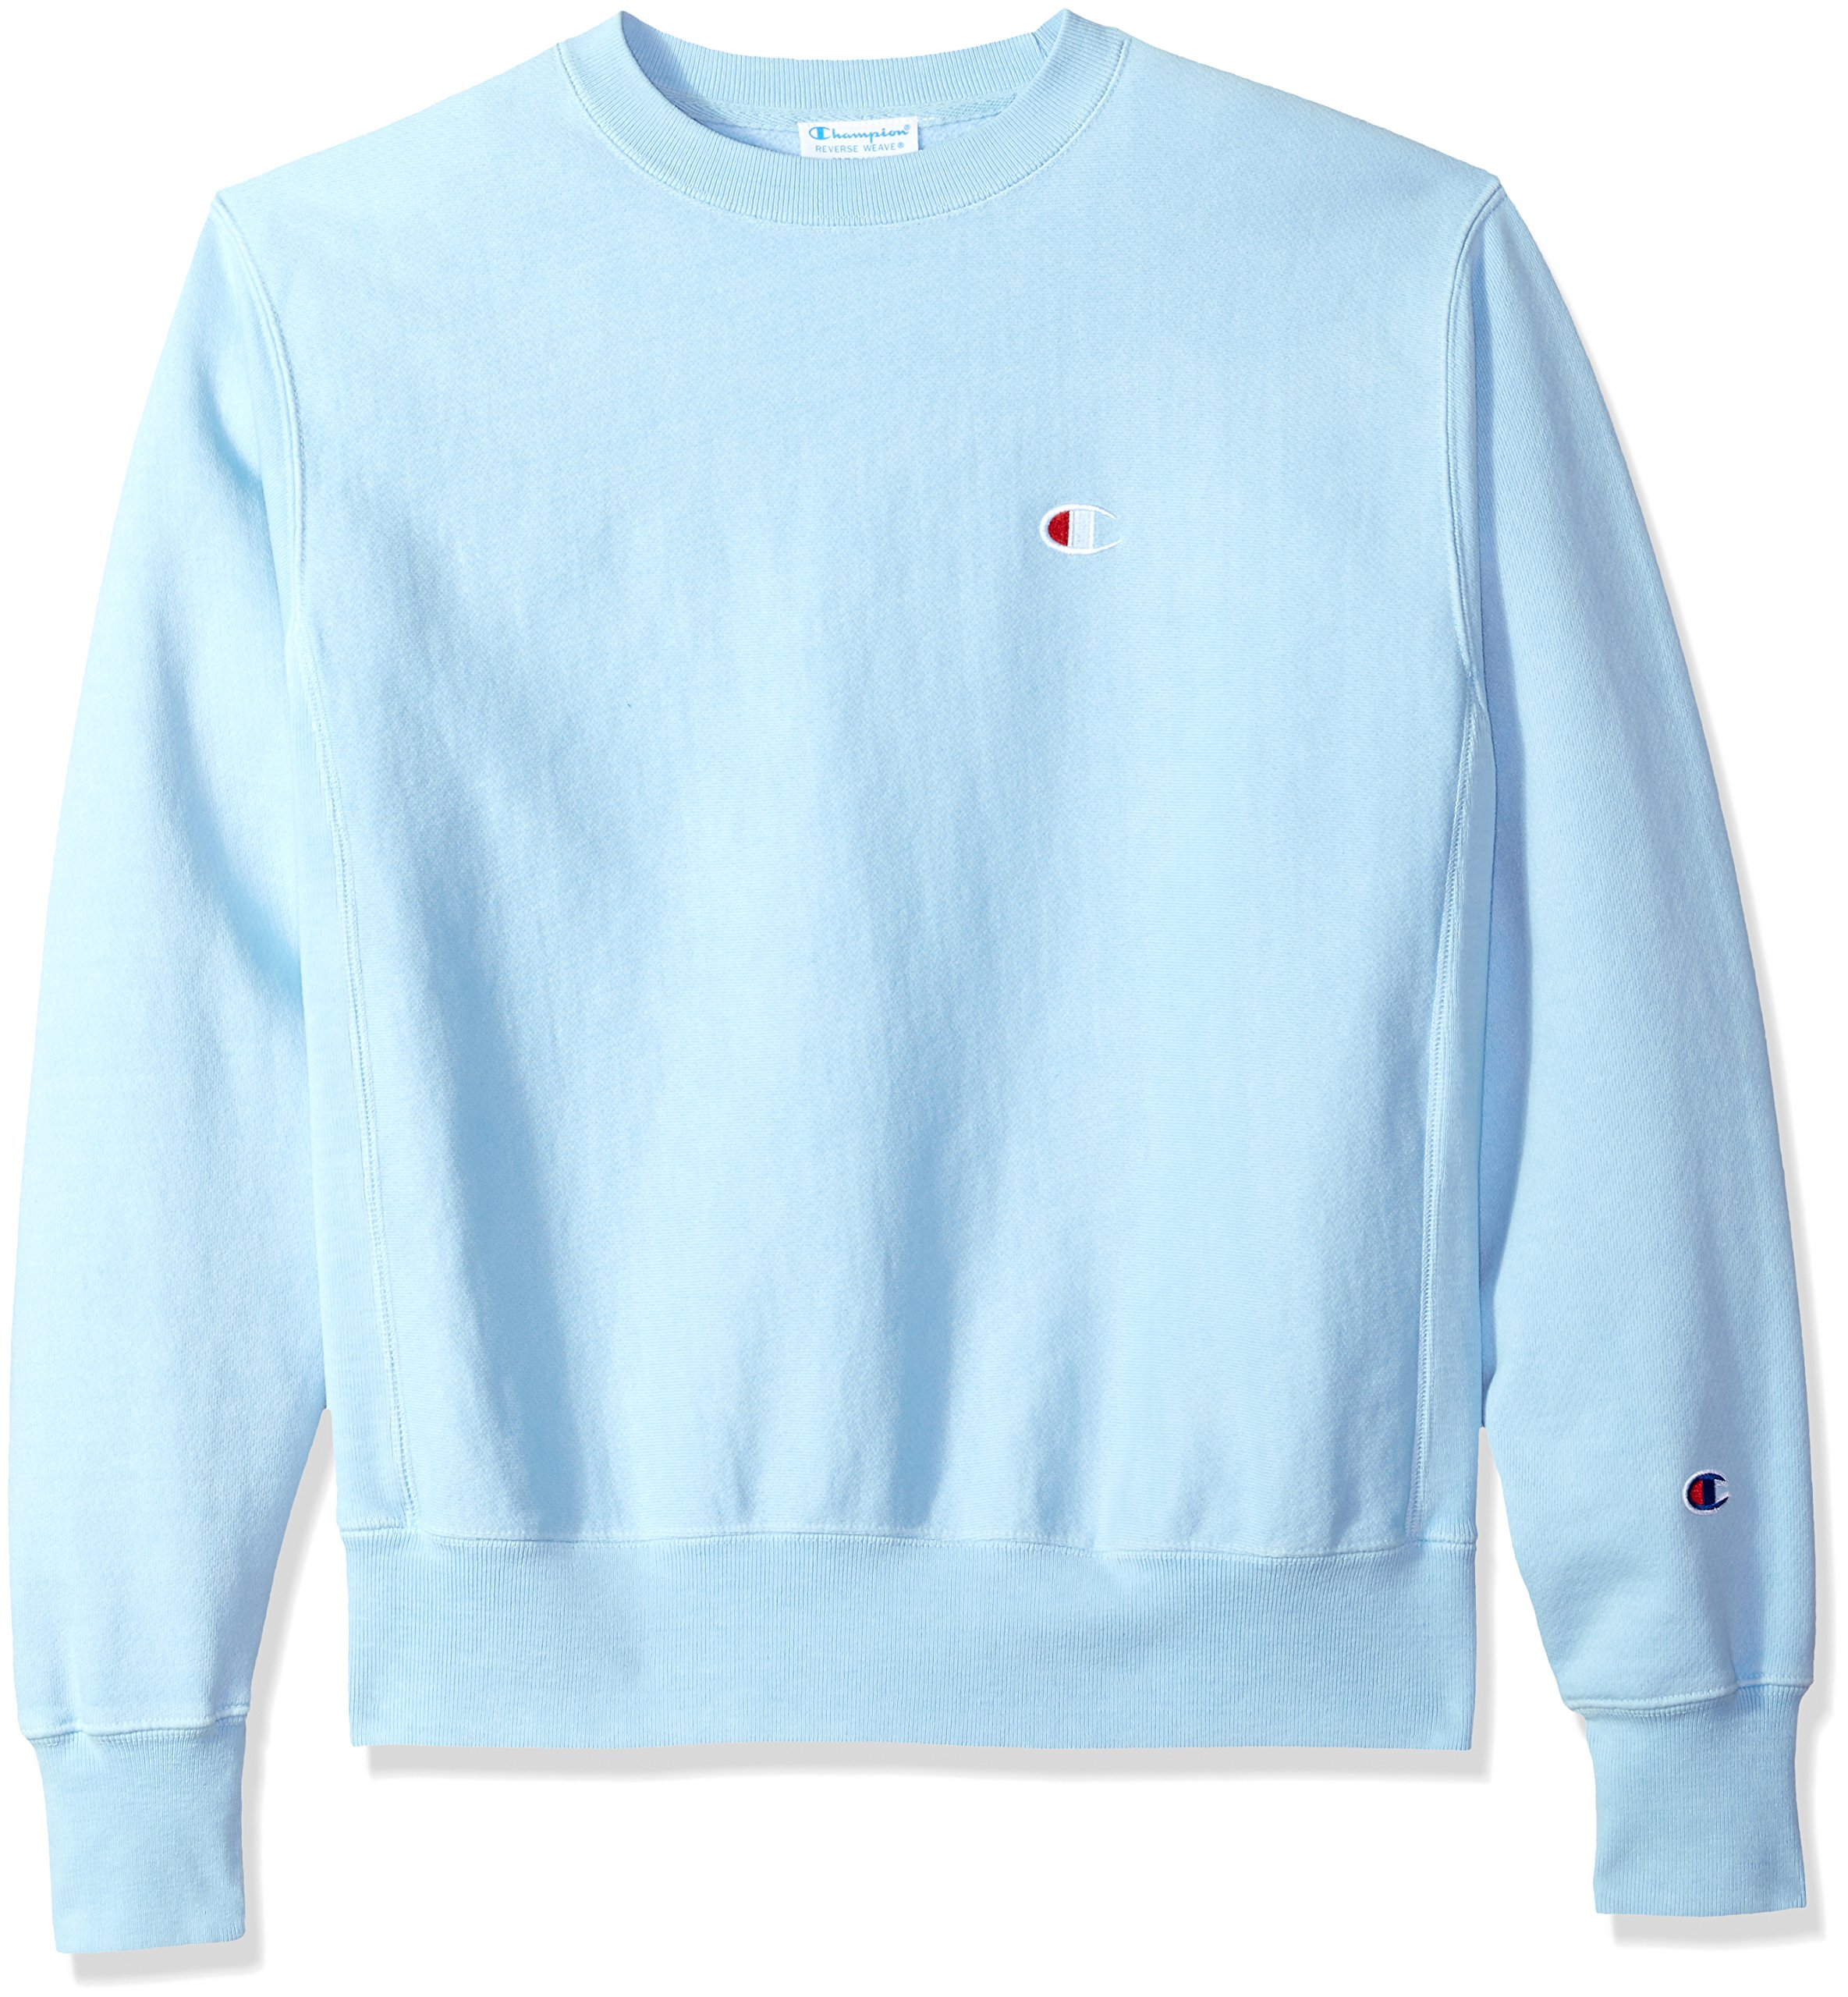 Champion LIFE Men's Reverse Weave Sweatshirt, Upstate Blue Pigment Dyed, XS